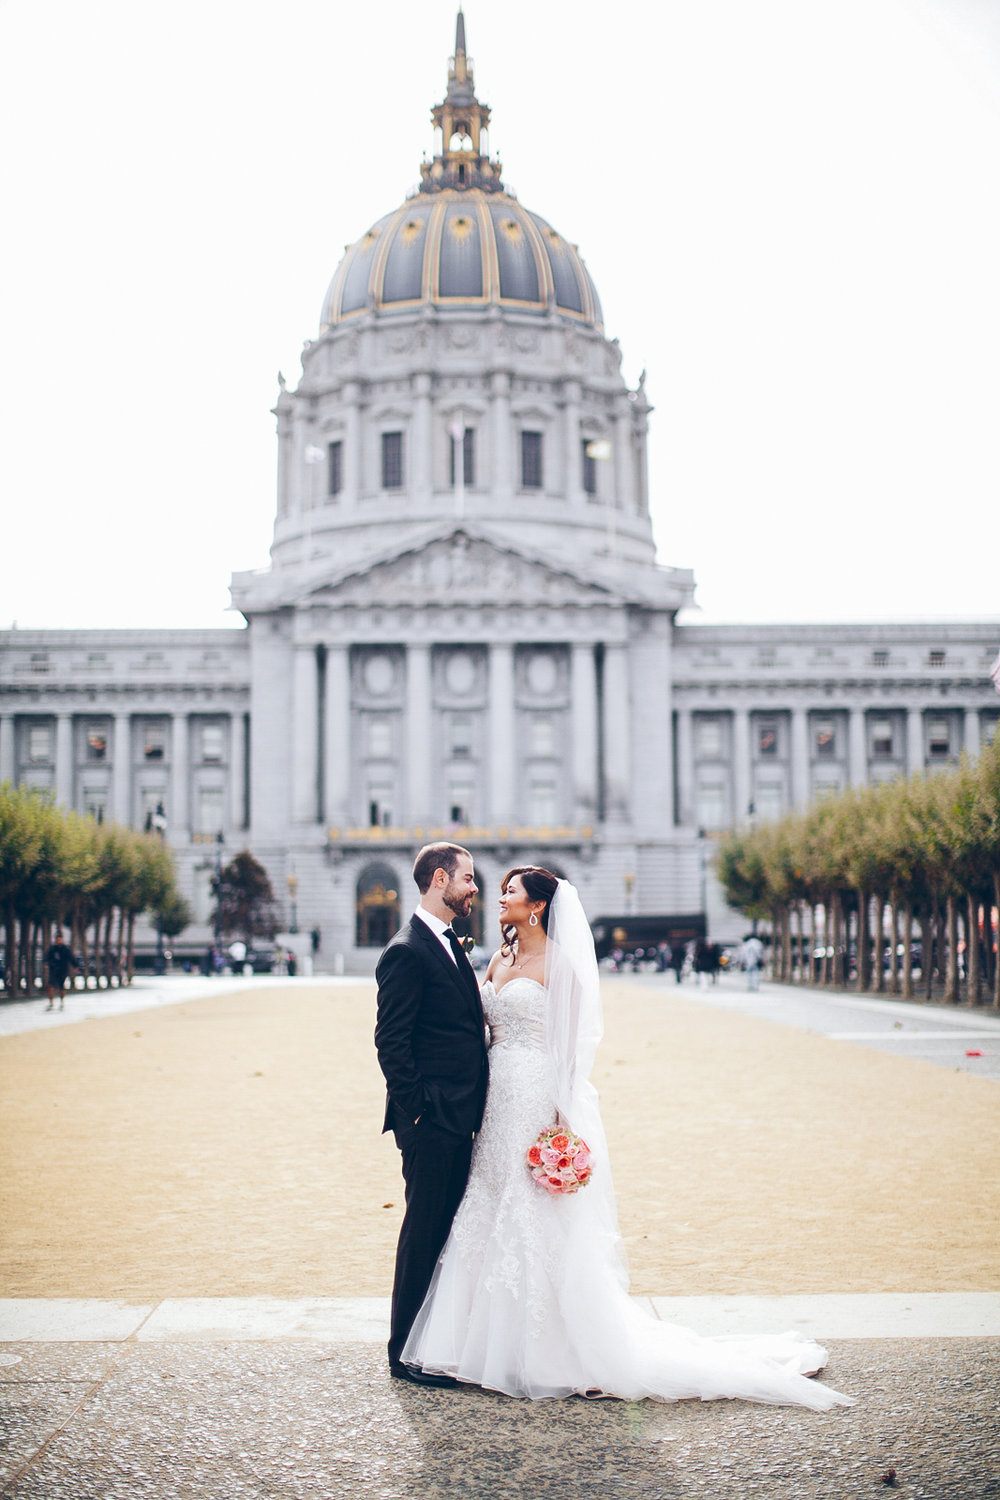 San_francisco_city_hall_wedding_photography_meegan_travis_ebony_siovhan_bokeh_photography_62.jpg